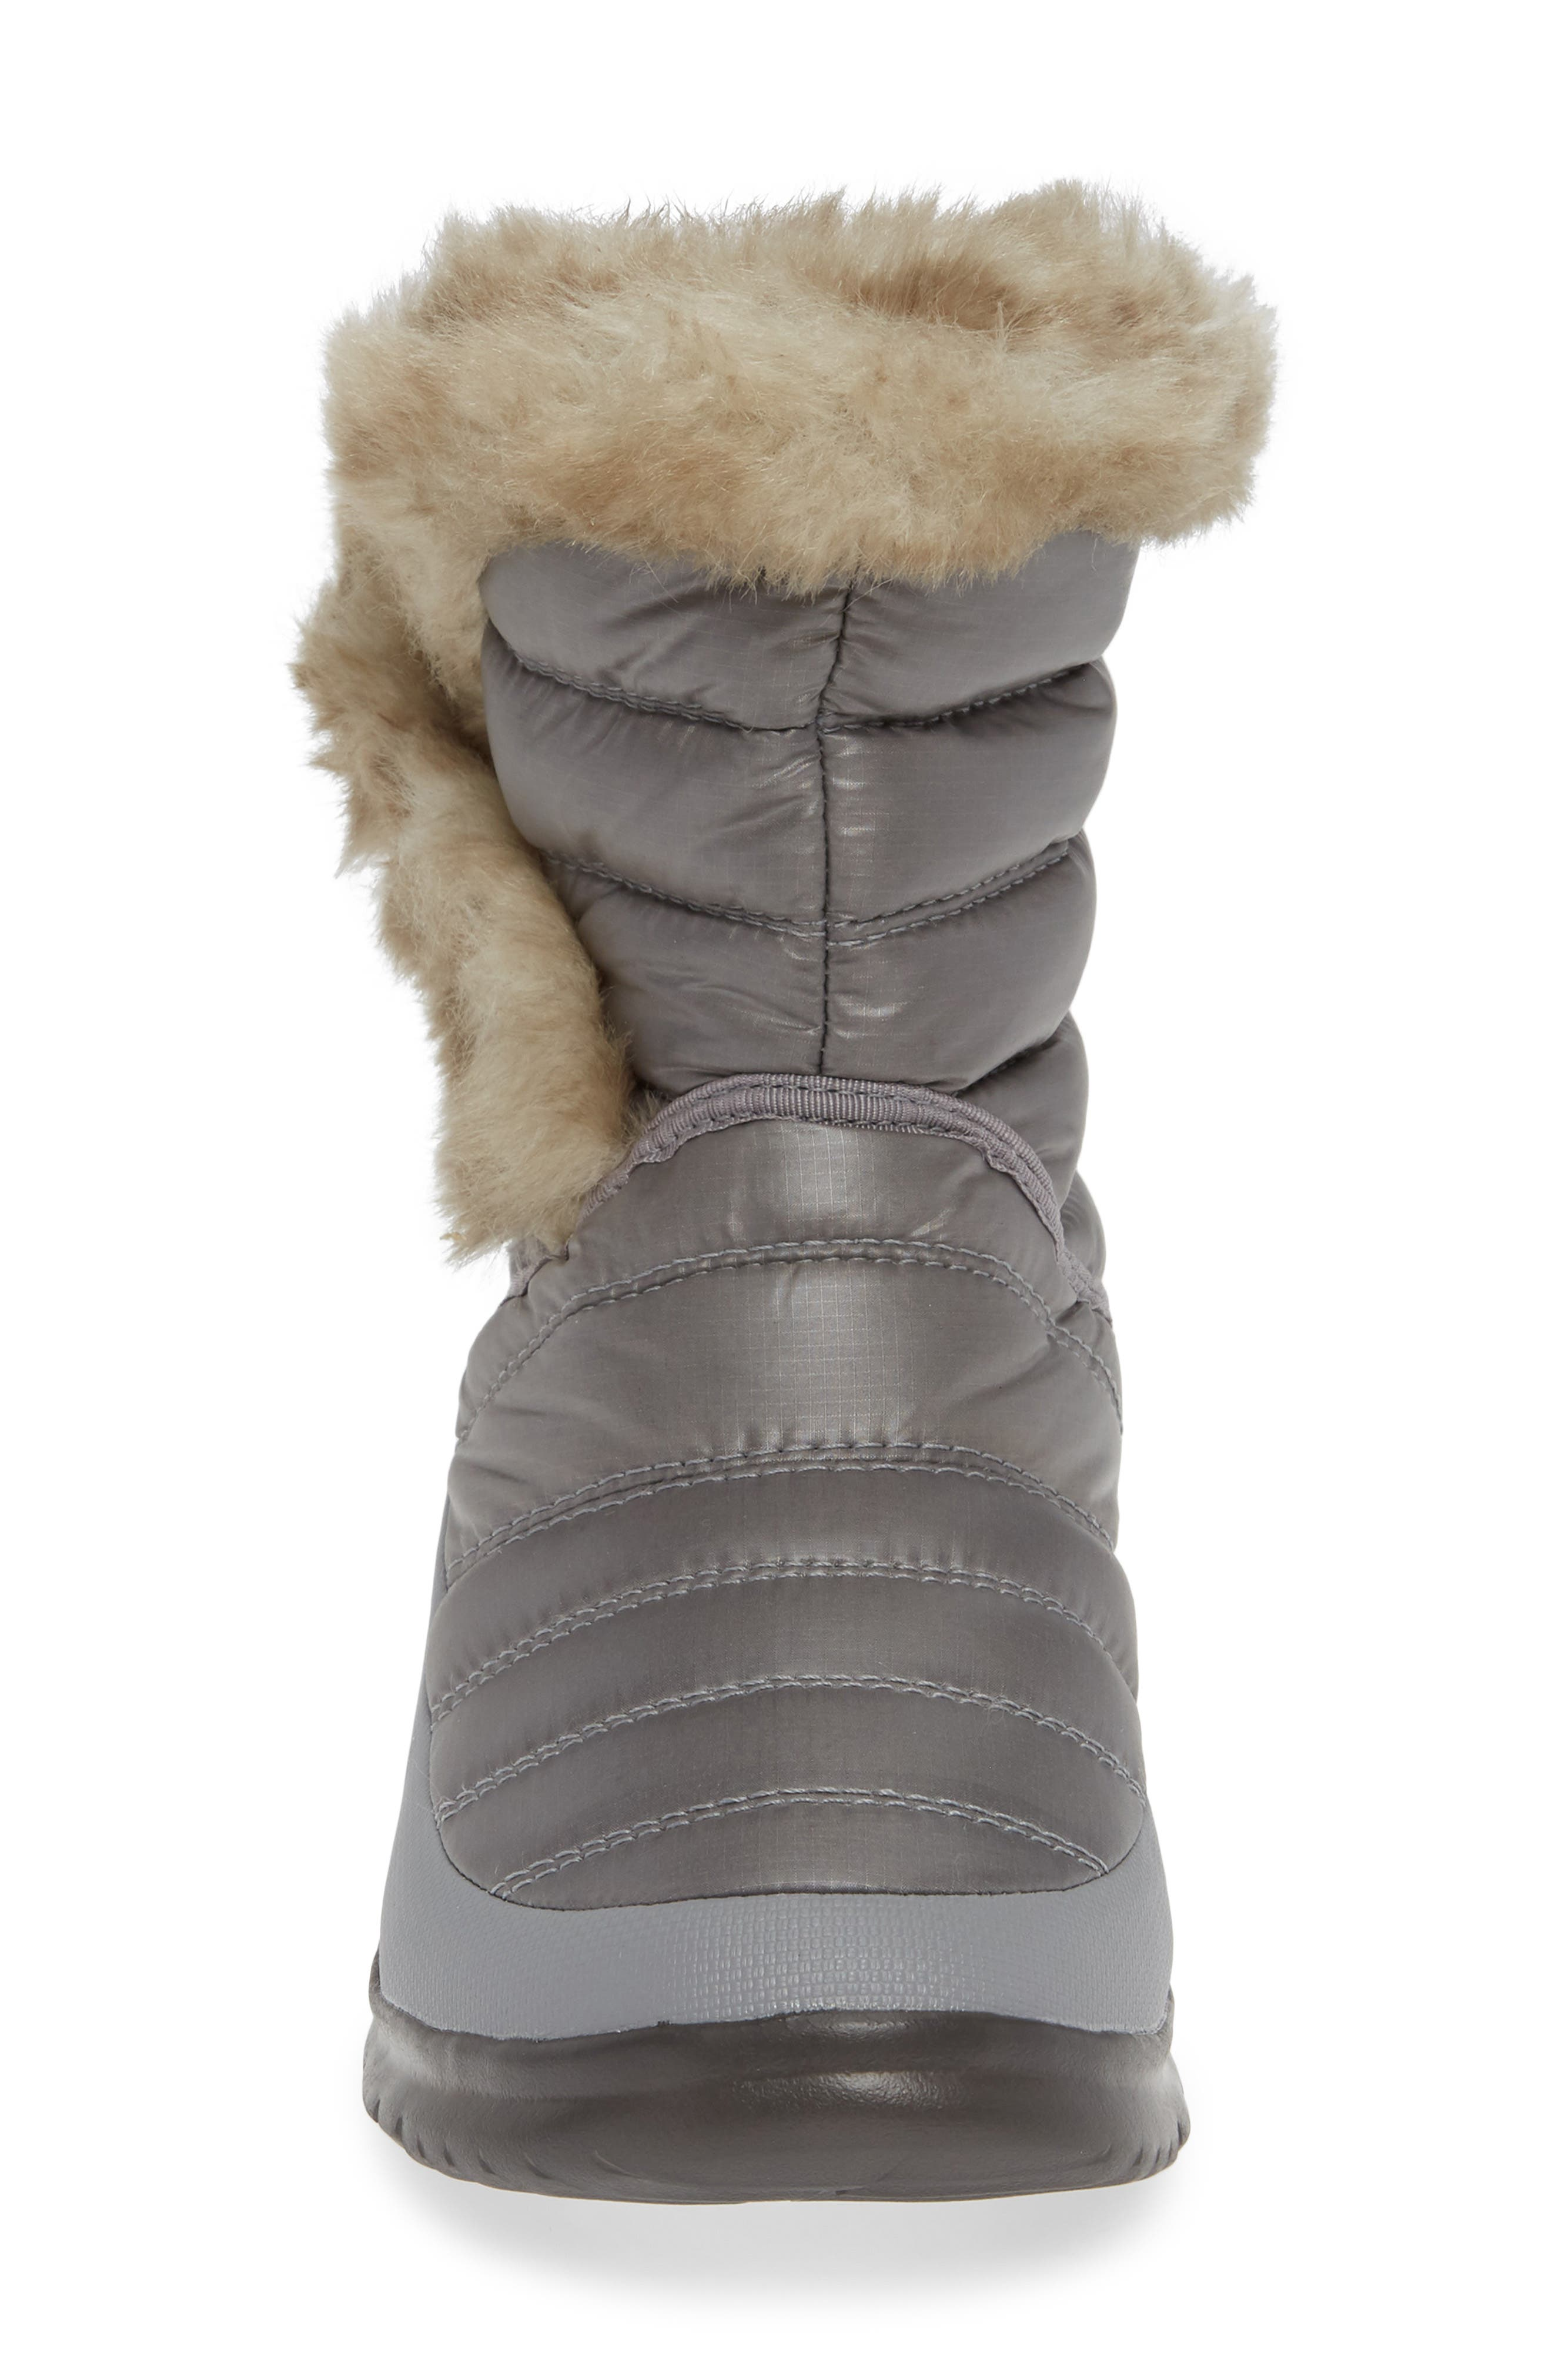 Microbaffle Waterproof ThermoBall<sup>®</sup> Insulated Winter Boot,                             Alternate thumbnail 4, color,                             SHINY FROST GREY/ BLUE HAZE